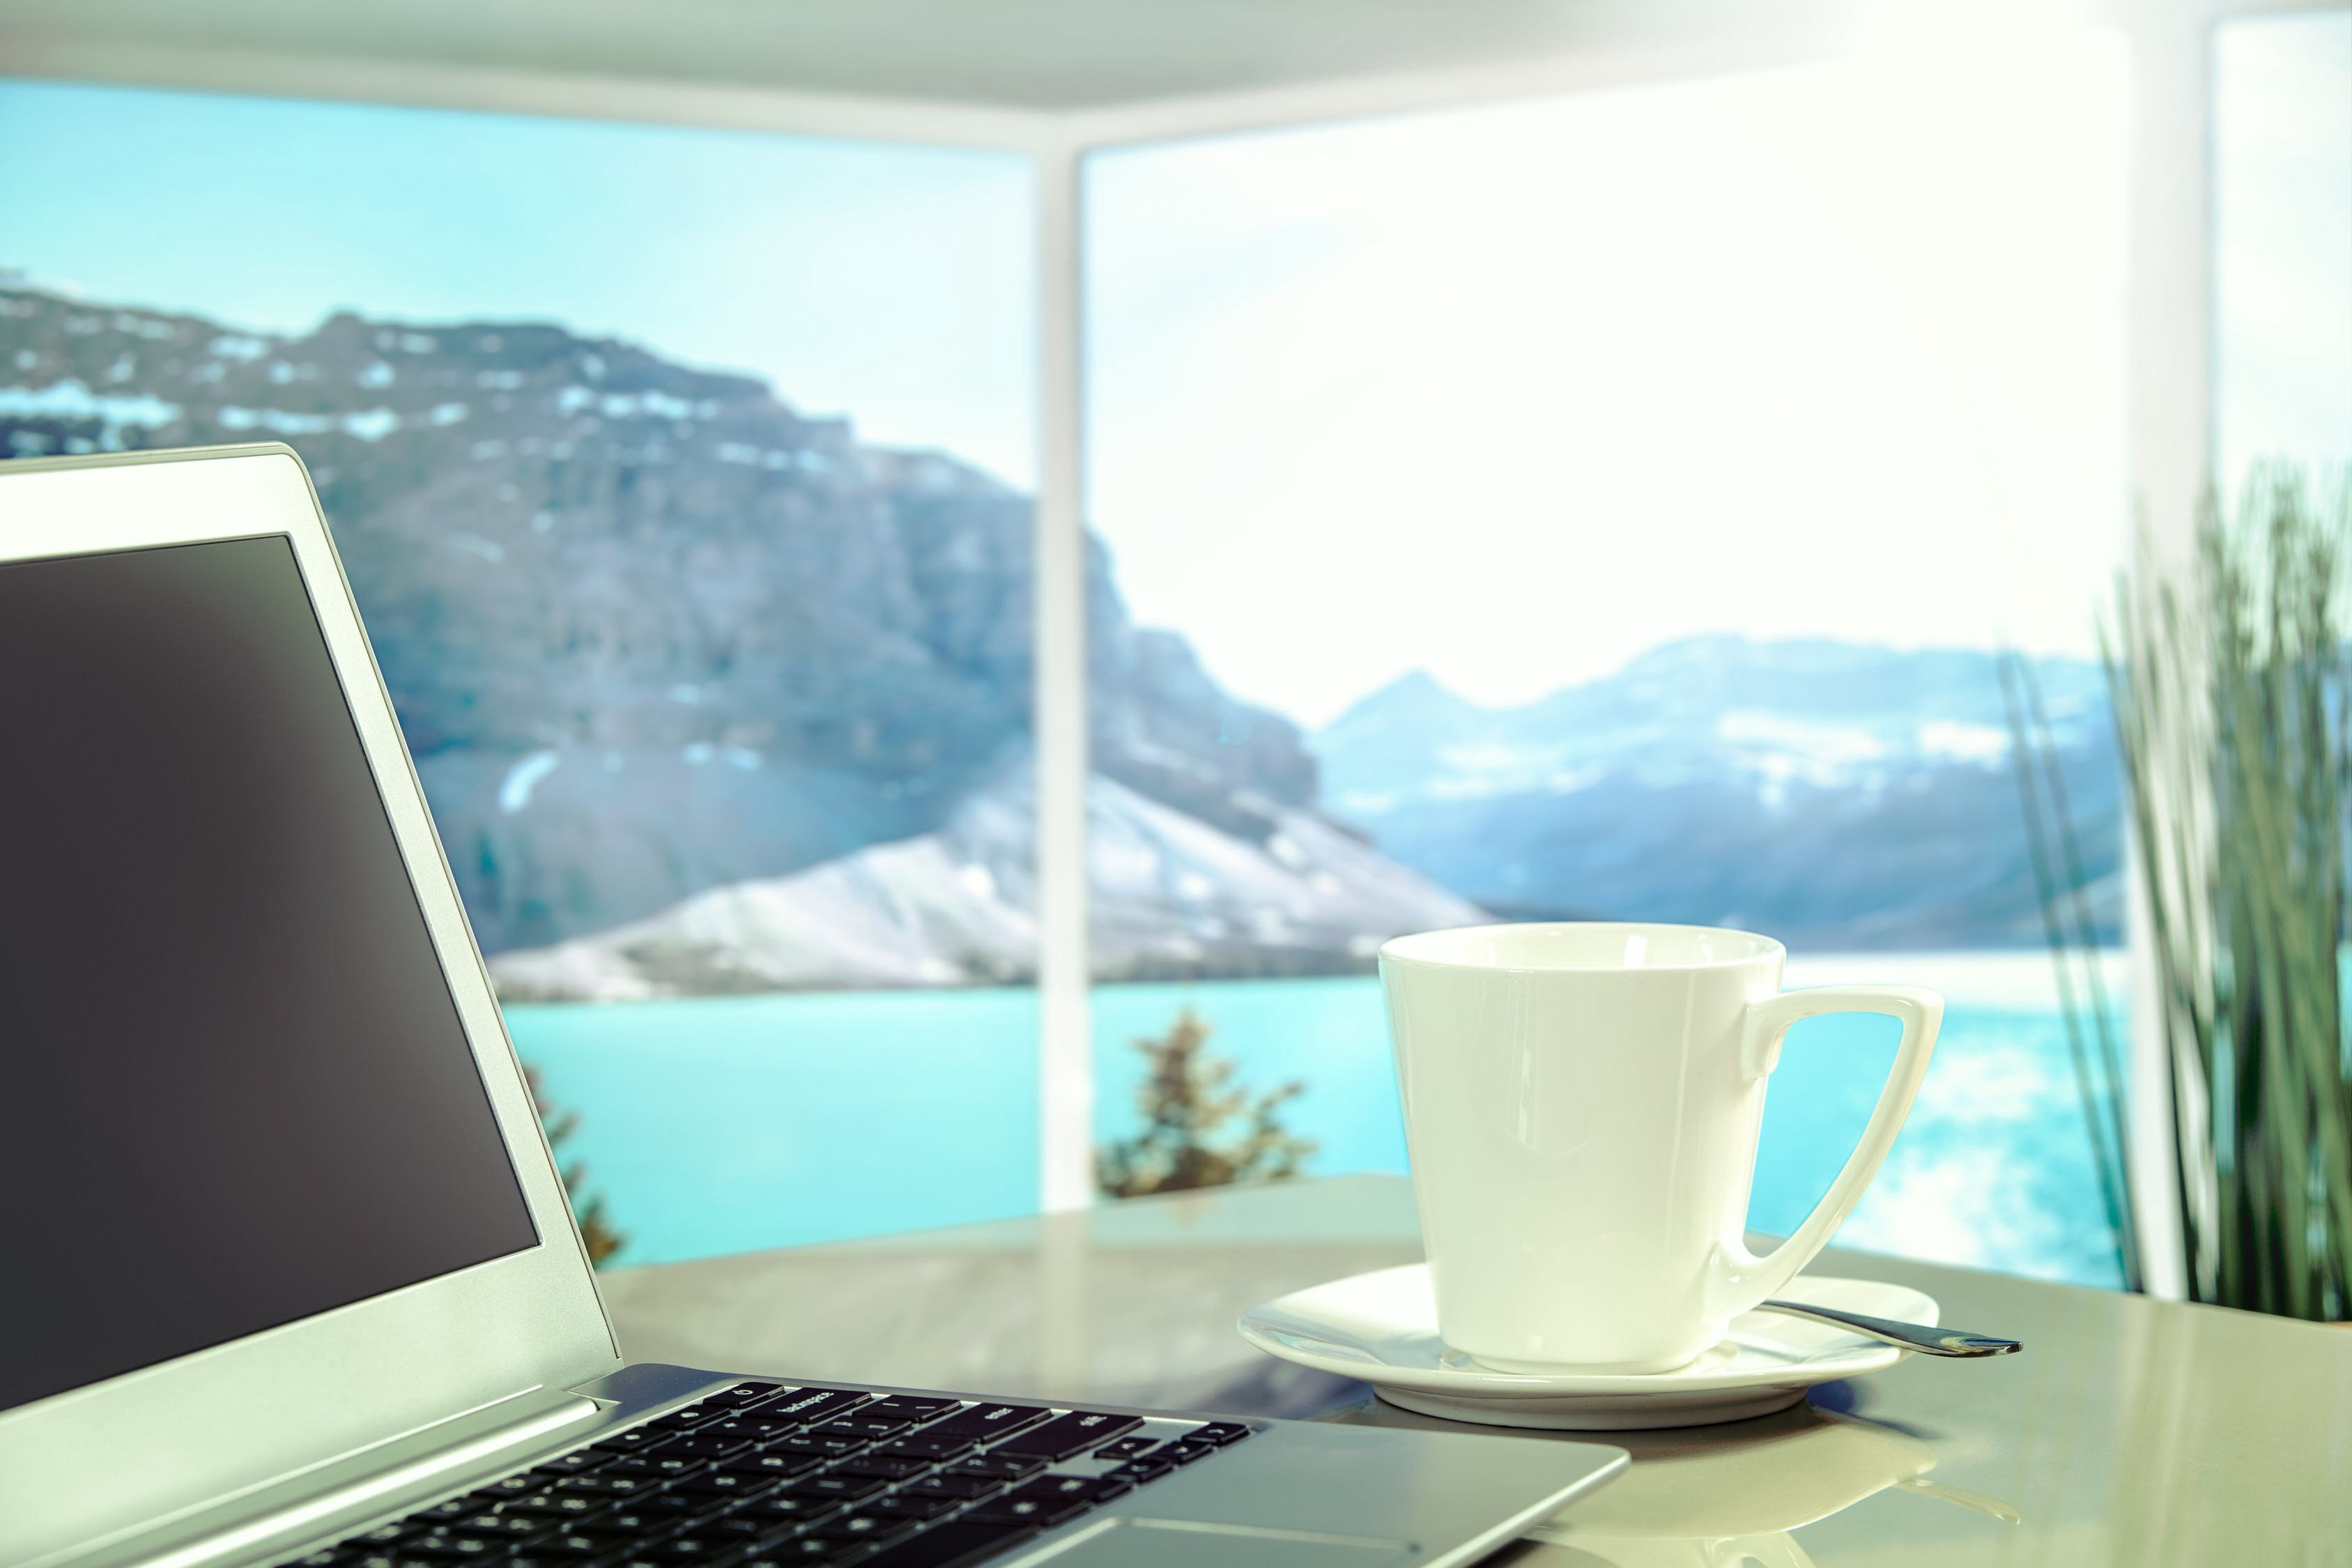 A laptop on a table overlooking a scenic getaway